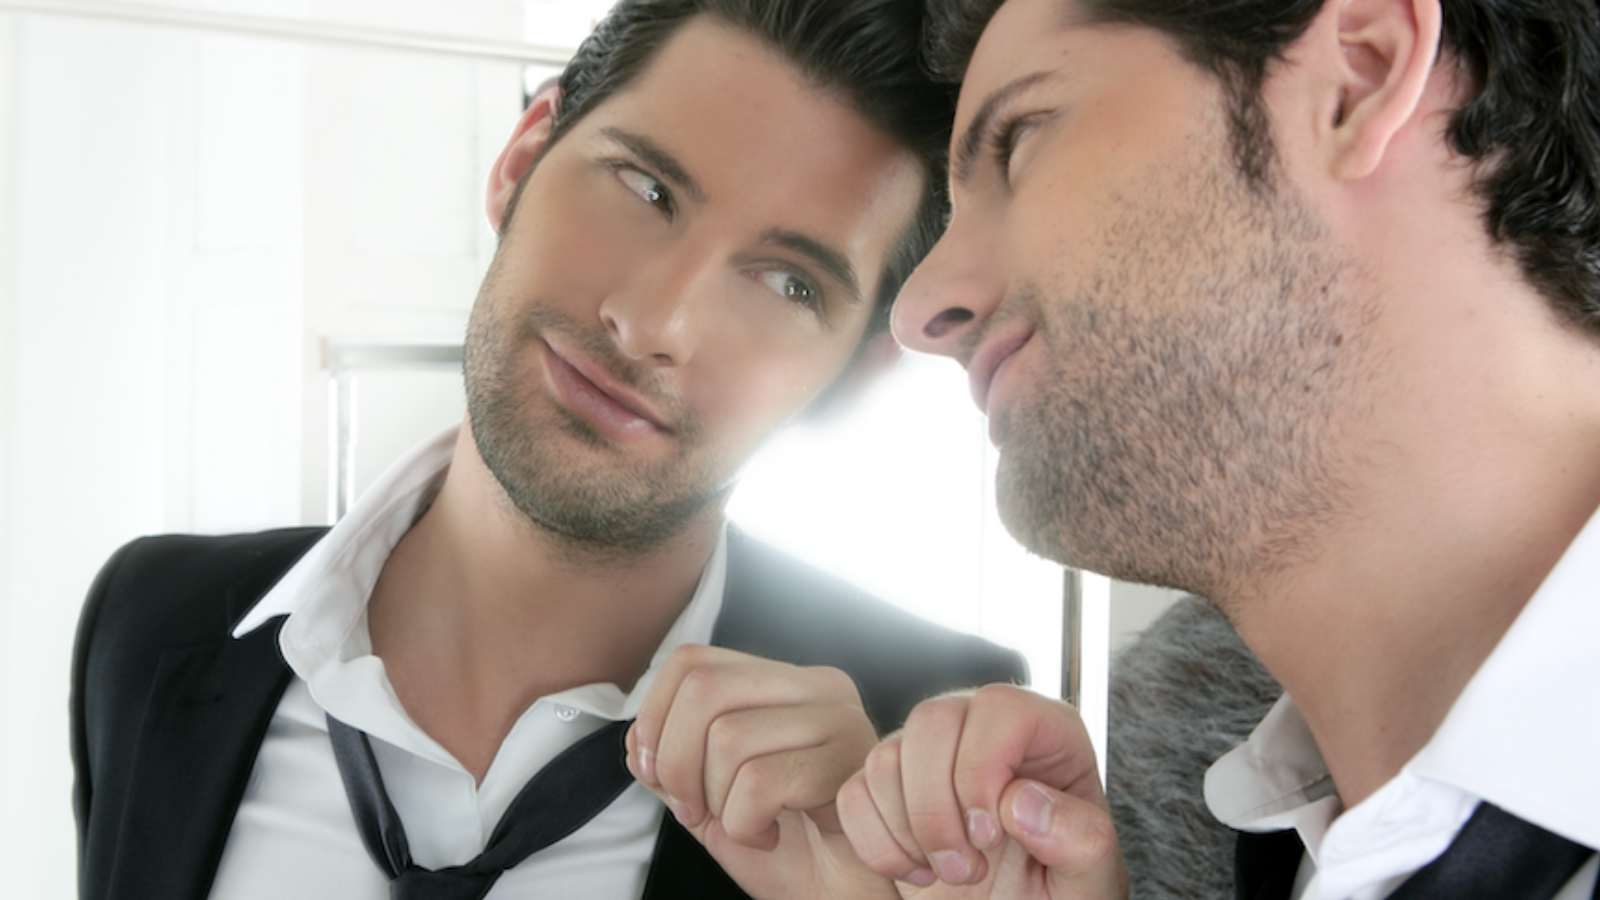 The weird way narcissists are benefitting from Coronavirus